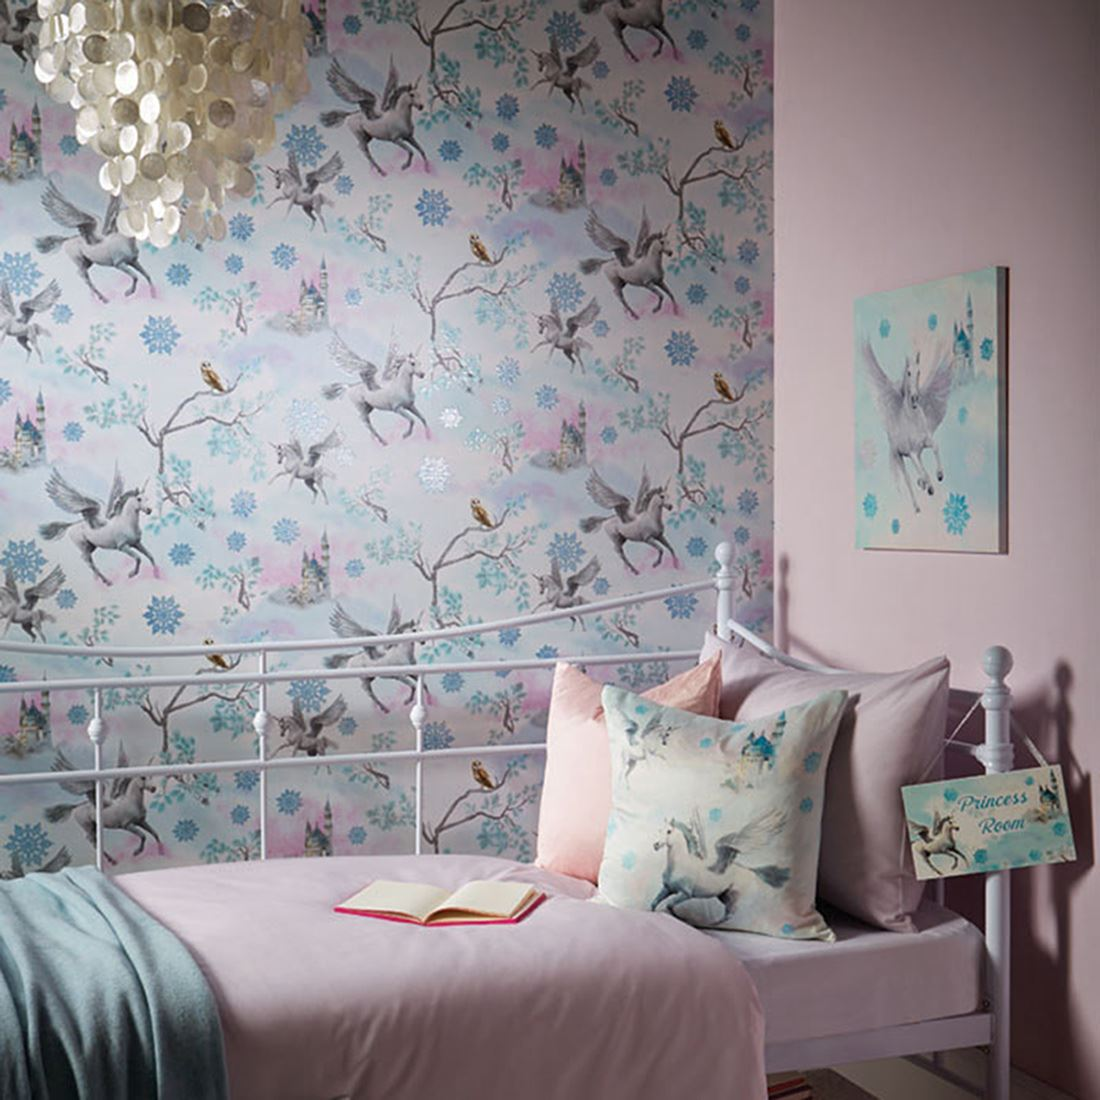 GIRLS WALLPAPER BEDROOM DECOR GLITTER UNICORNS HEARTS BUTTERFLIES